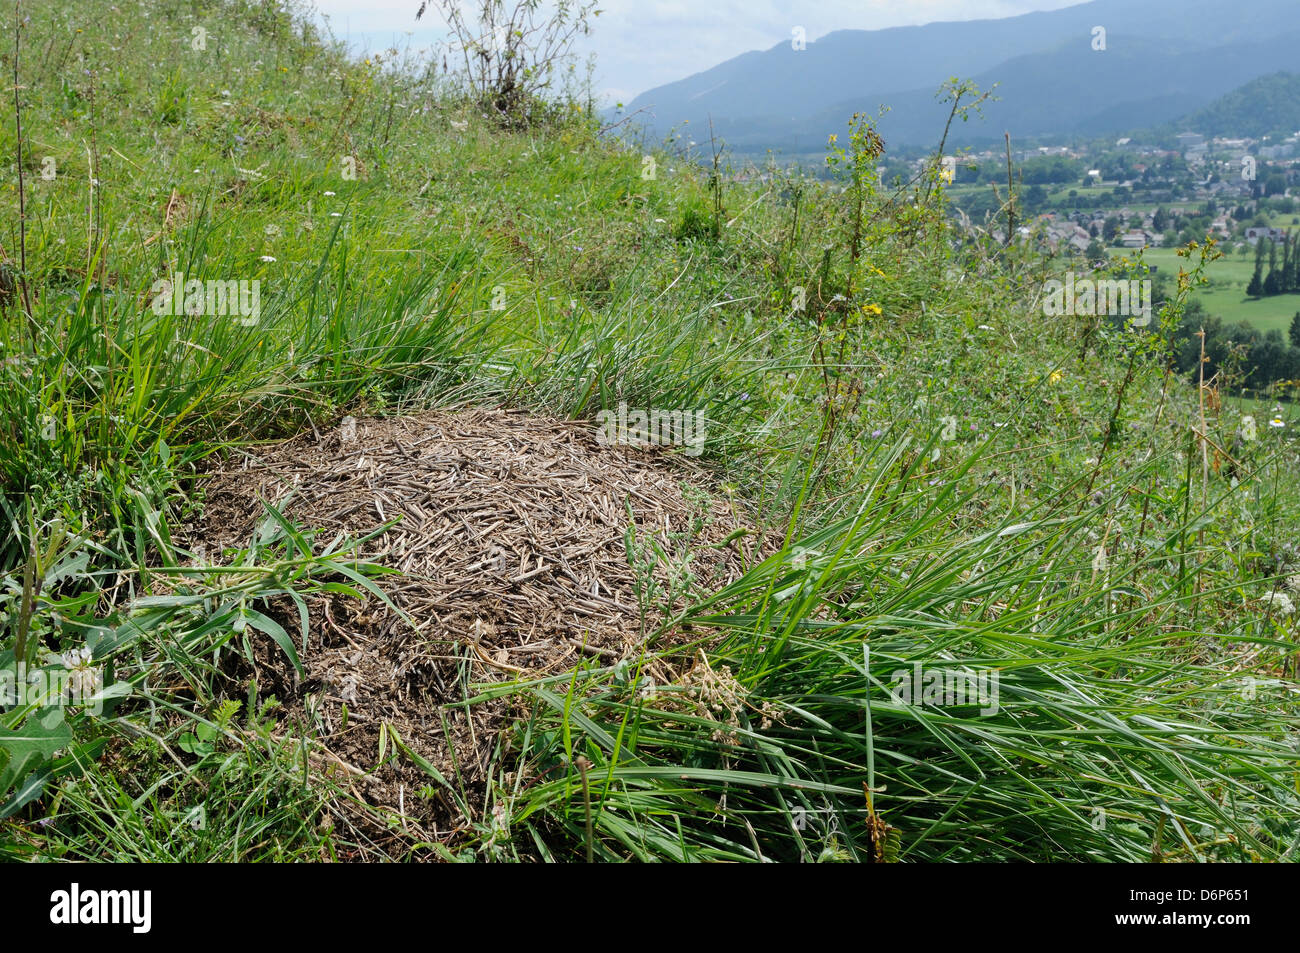 Black-backed Wiese Ameisen (Formica Pratensis) Nest Hügel grass der alten Stämme in montane Weiden in Stockbild